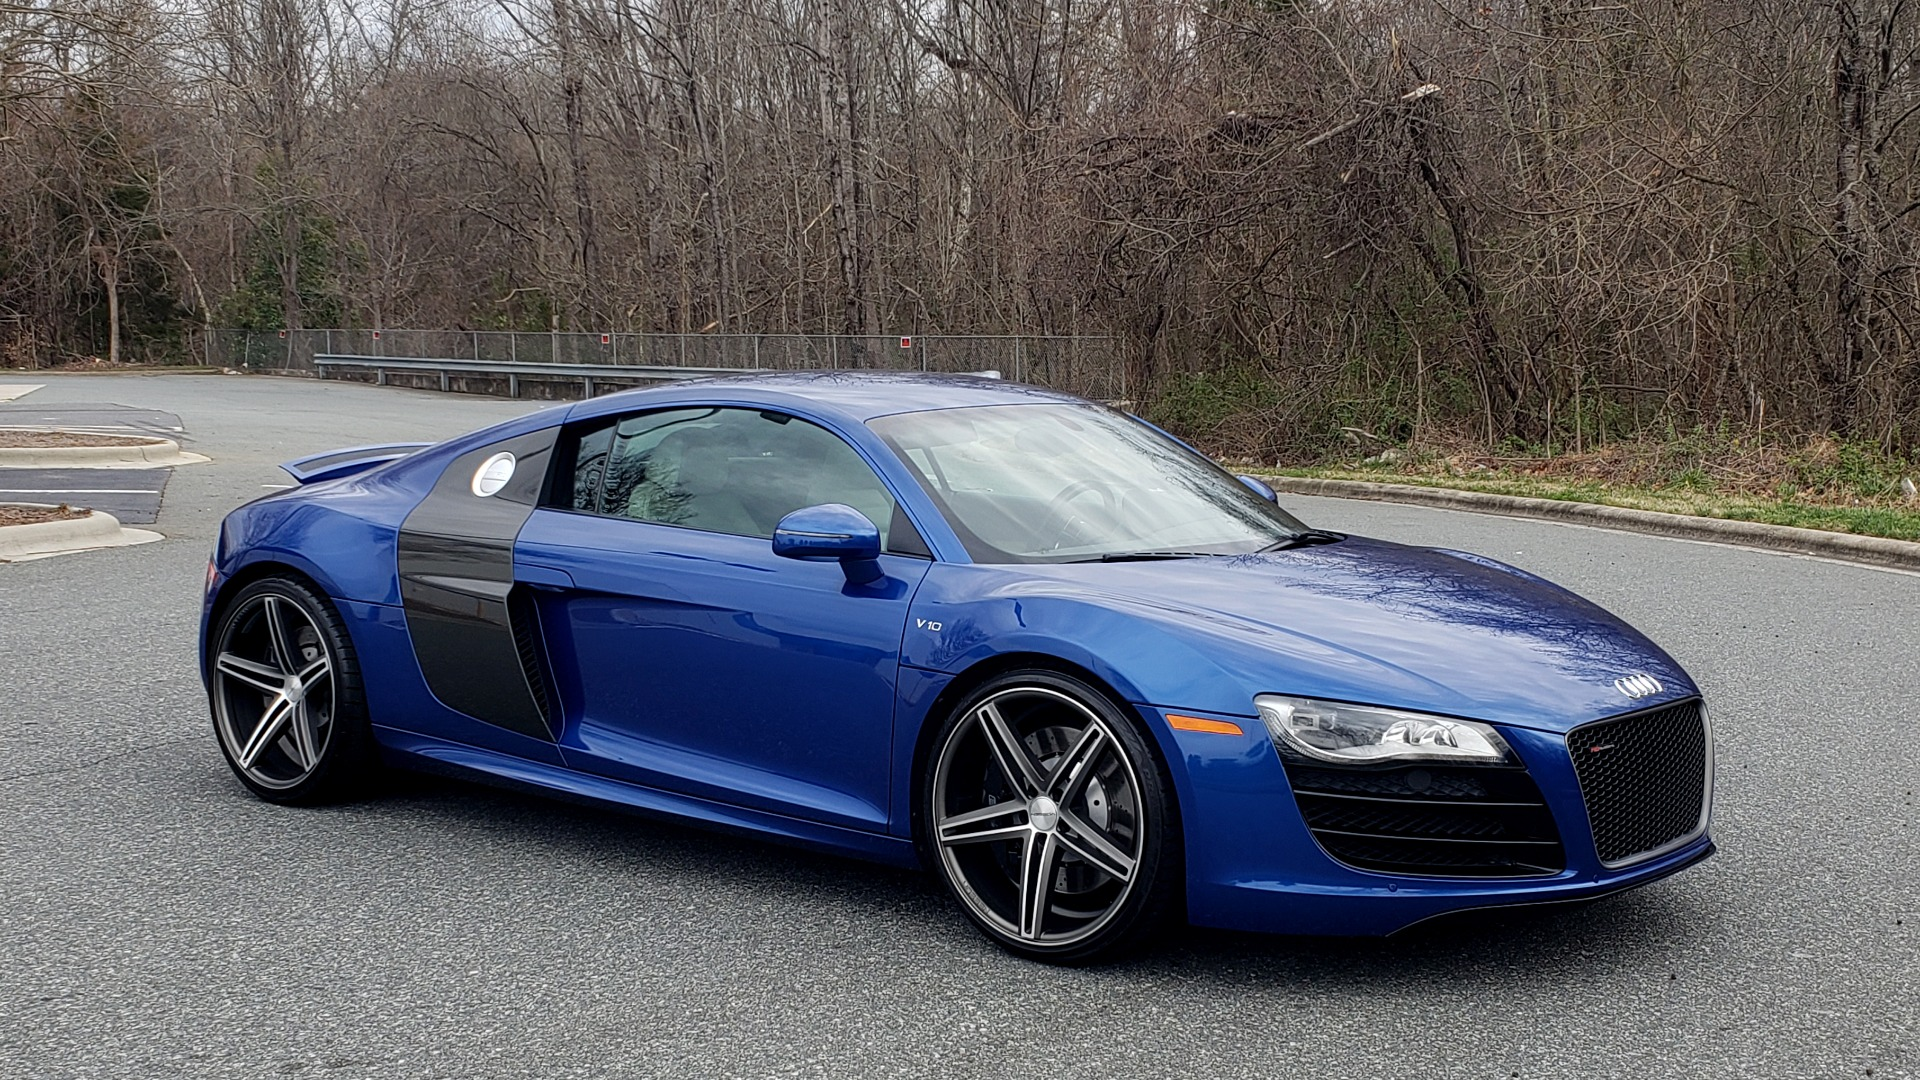 Used 2010 Audi R8 5.2L V10 / AWD / NAV / B&O SND / HTD STS / CUSTOM EXH & WHEELS for sale $78,000 at Formula Imports in Charlotte NC 28227 6